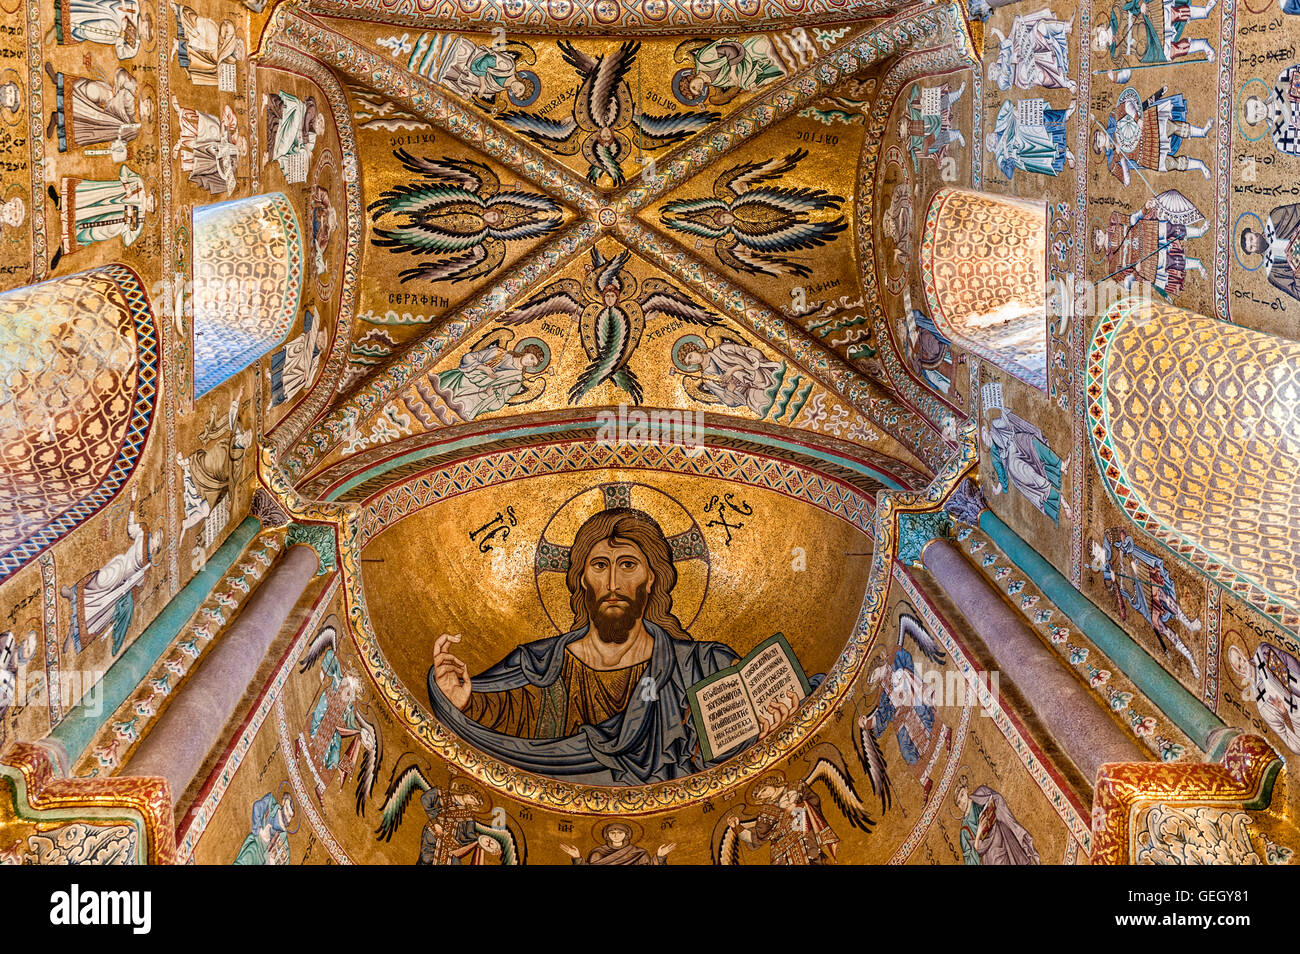 Italy Sicily Ceaflù cathedral interior Mosaic - Stock Image